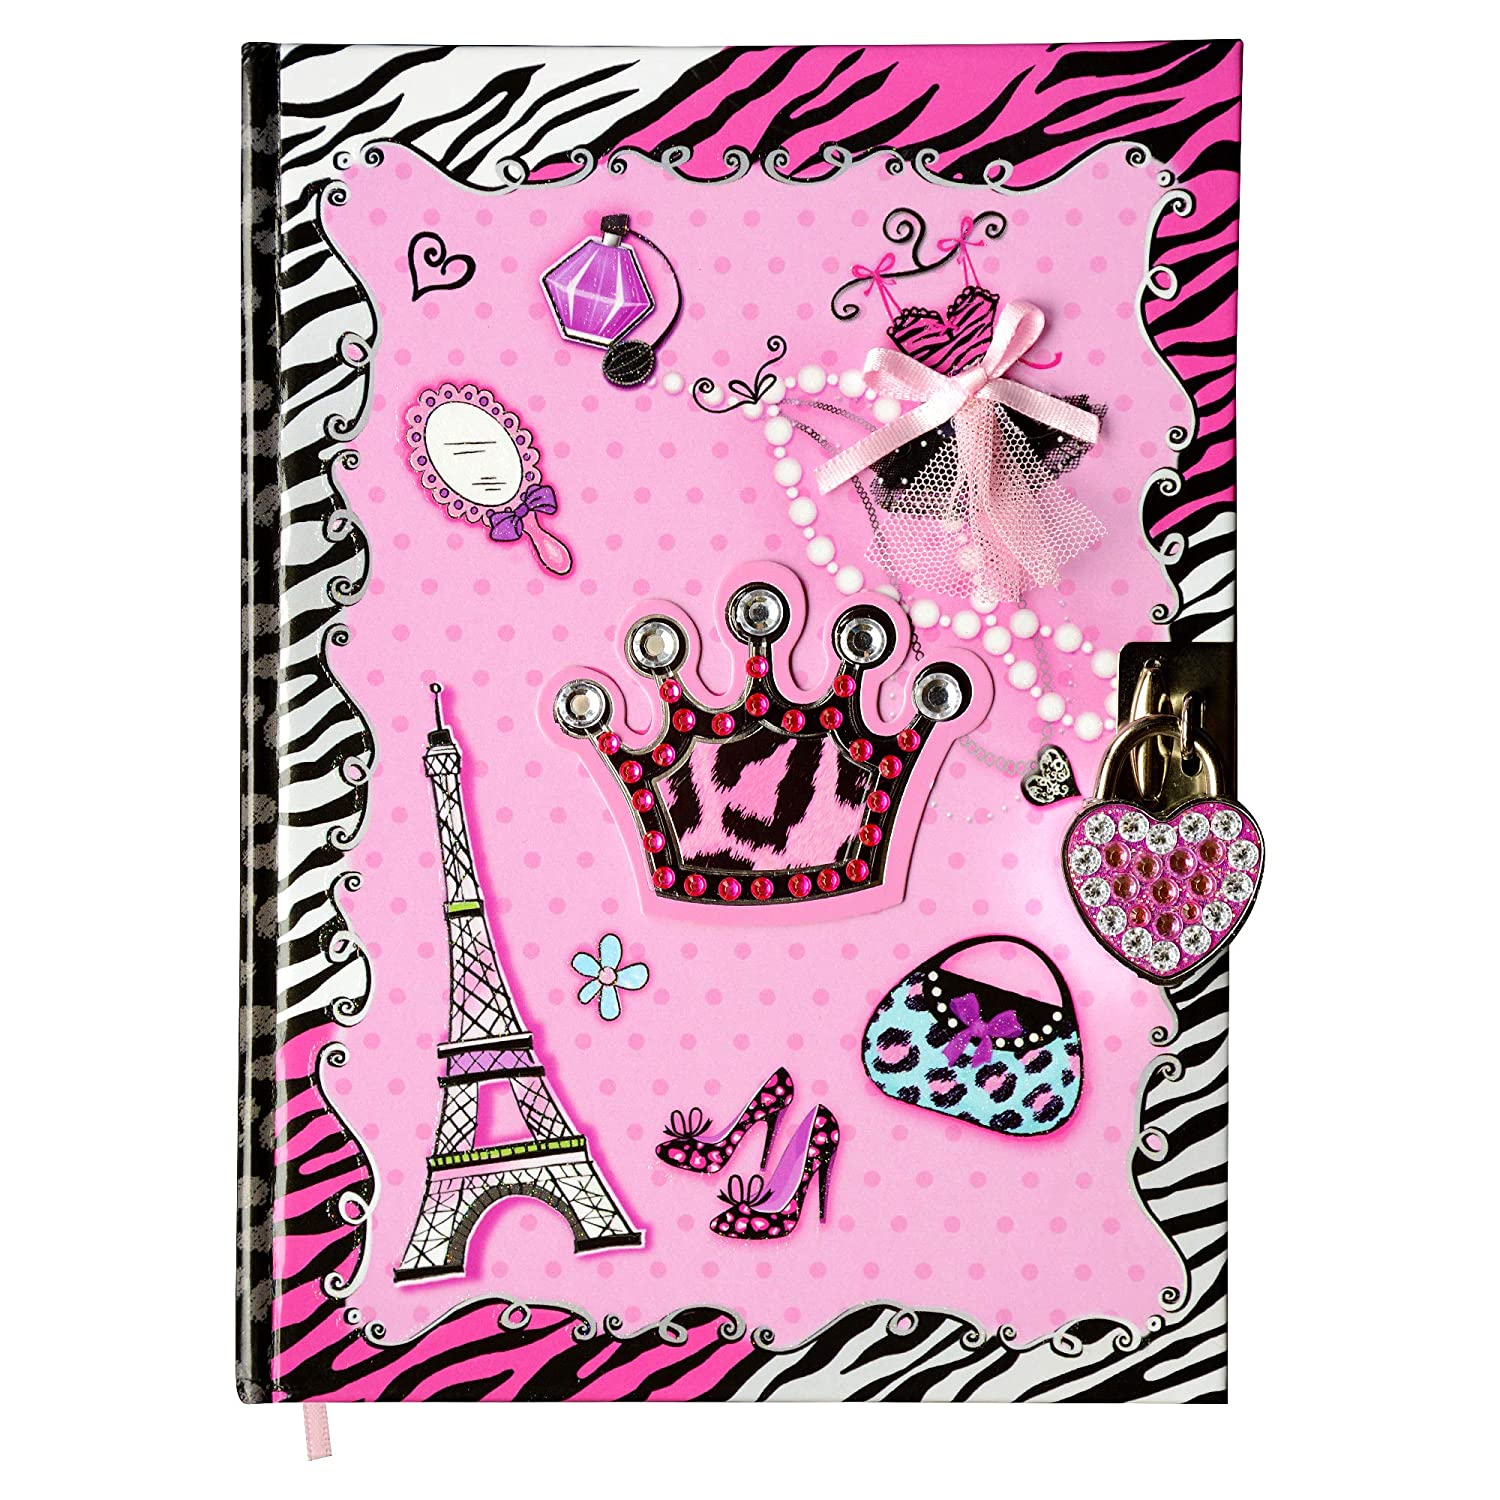 SMITCO Diary with Lock for Girls - Cute Pink Secret Dream Journal - Hardcover, Double-Sided, Lined, Blank Pages with Heart Shaped Lock and Keys